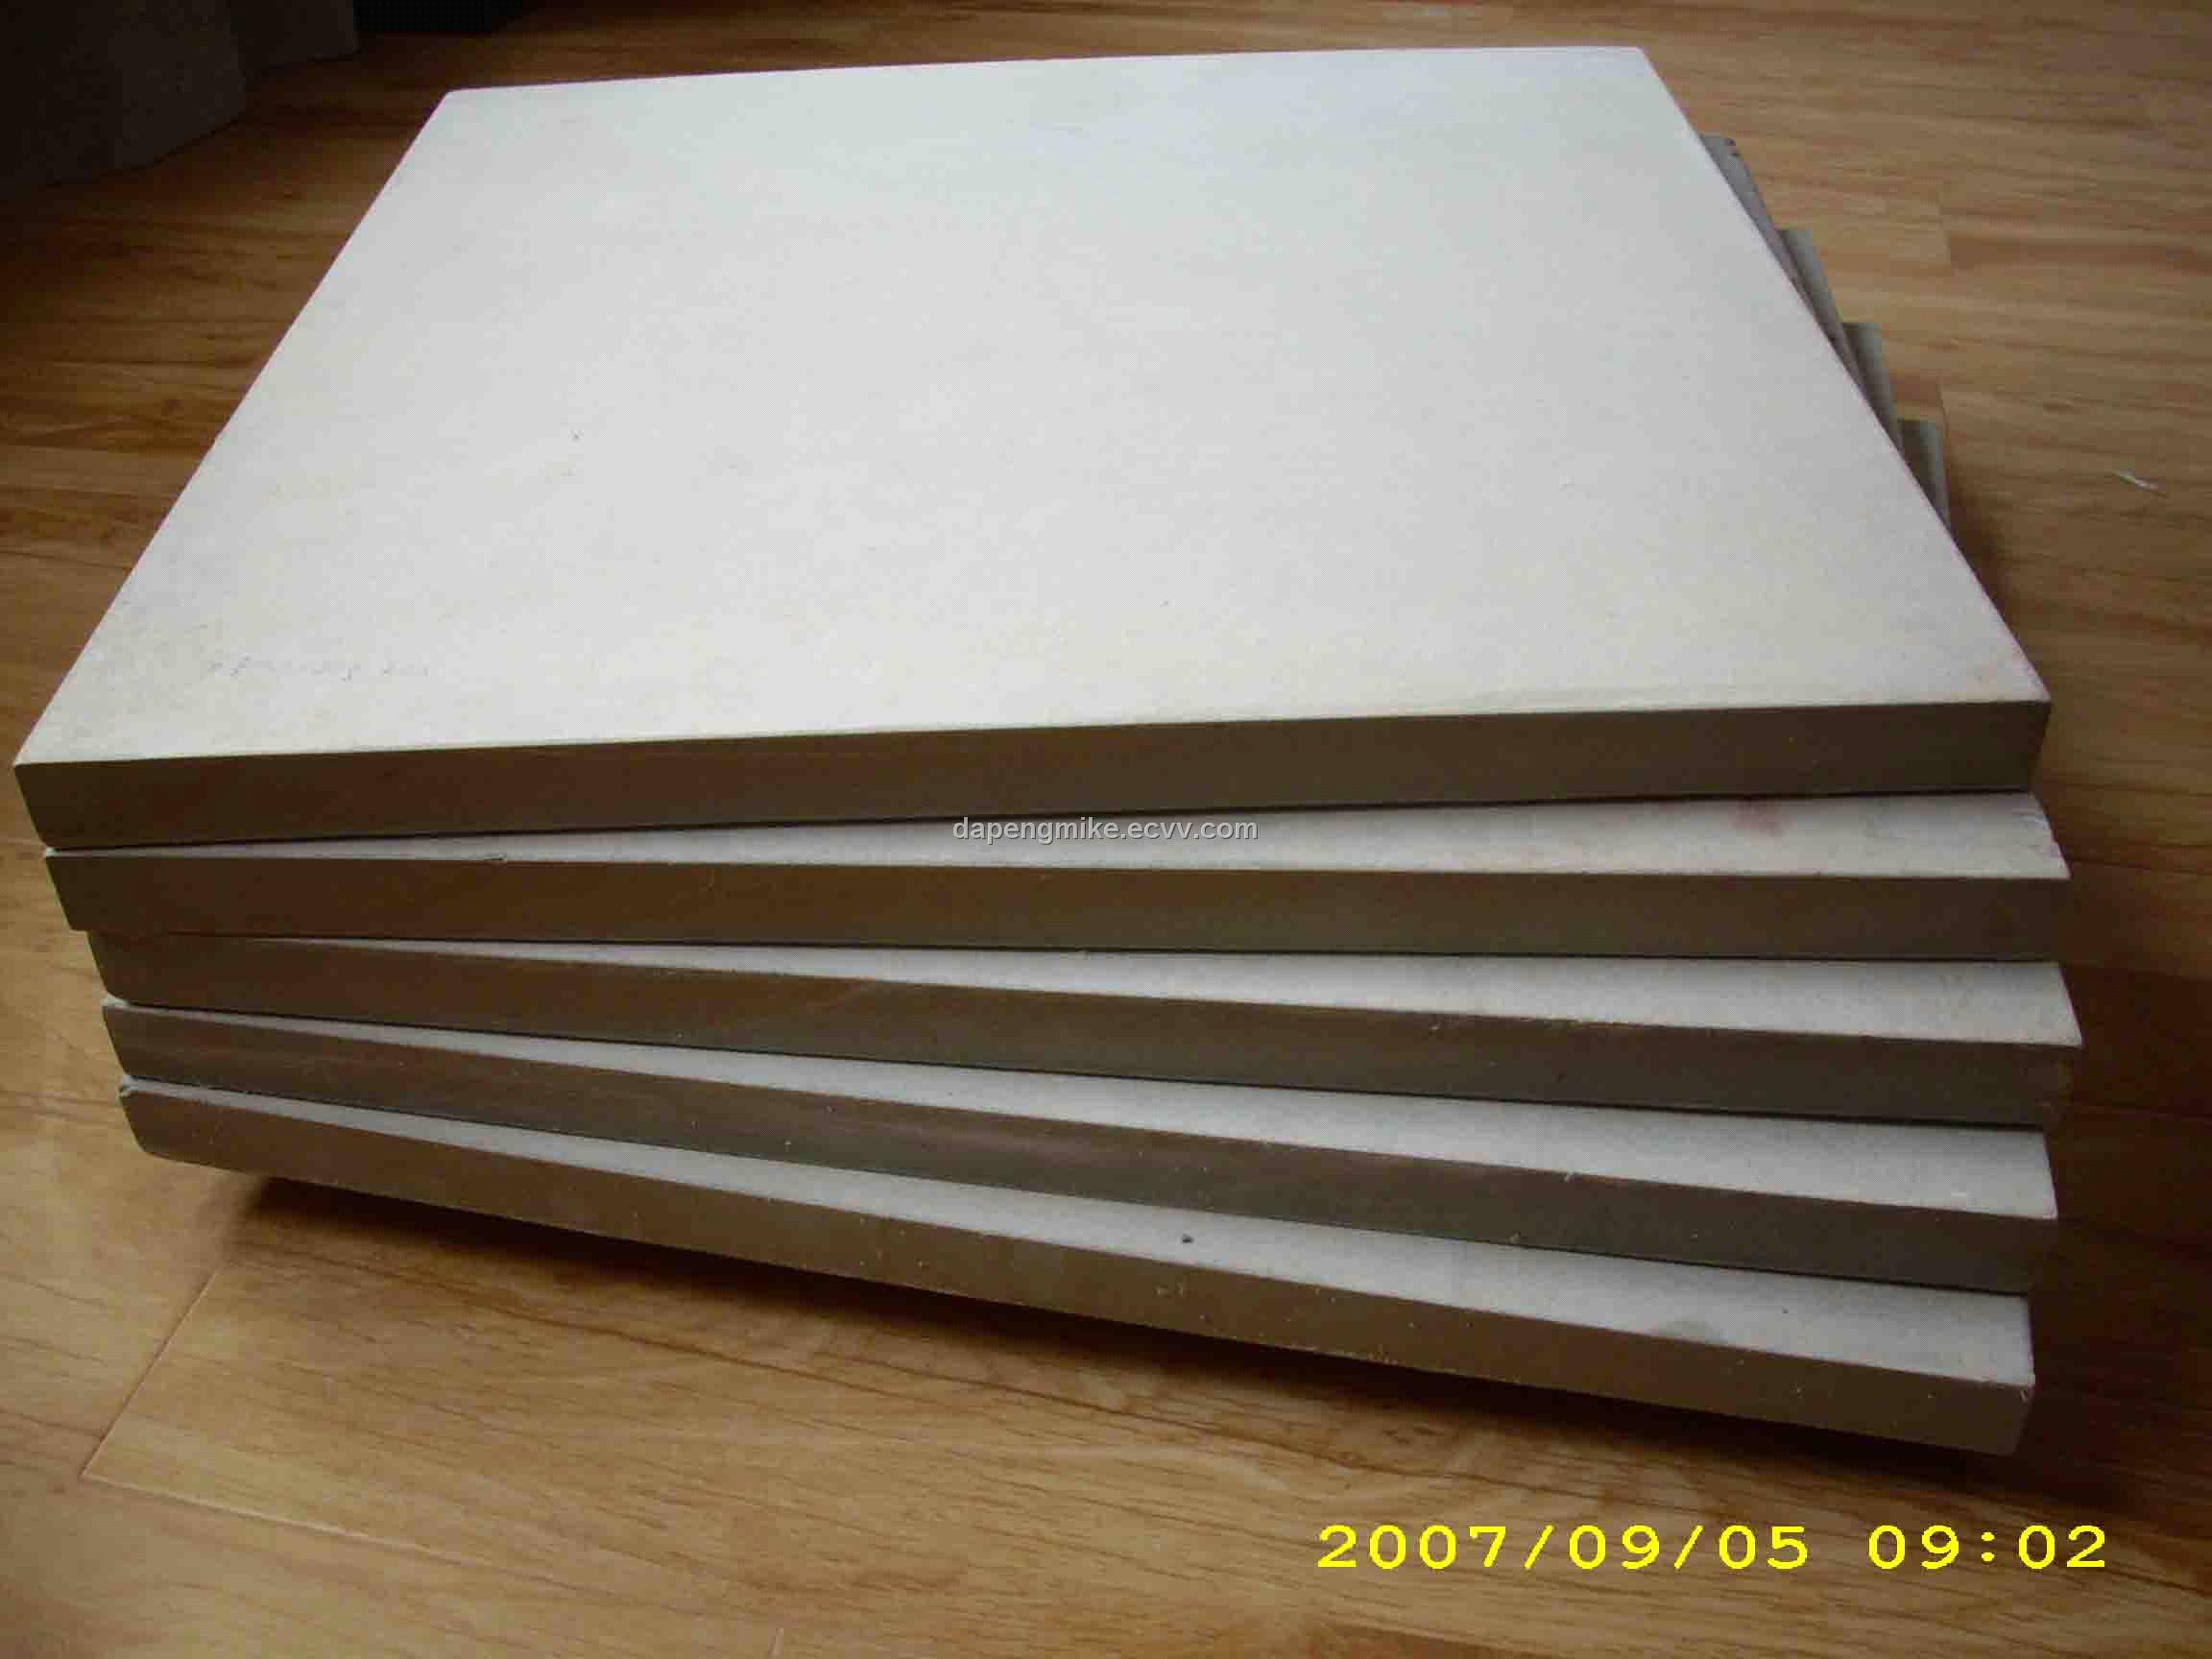 Cement Board Sizes : Fibre cement board sizes